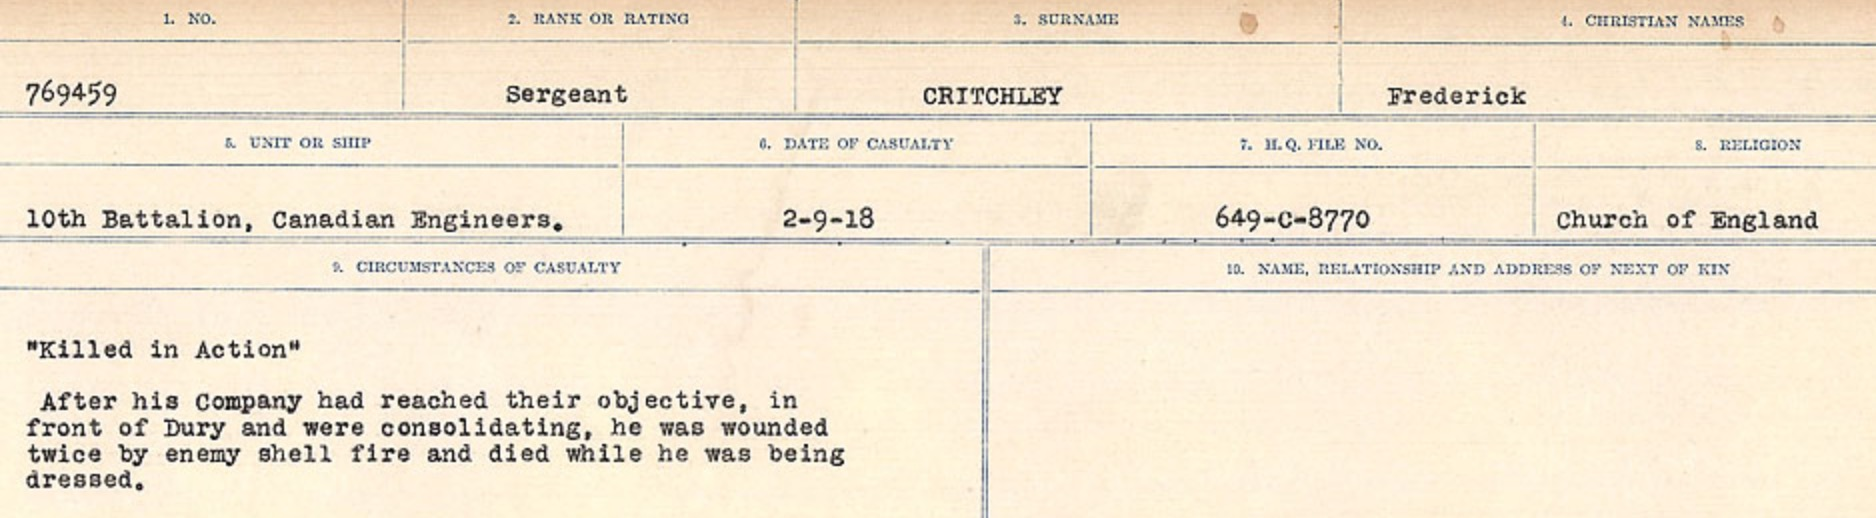 Circumstances of death registers– Source: Library and Archives Canada. CIRCUMSTANCES OF DEATH REGISTERS, FIRST WORLD WAR Surnames: CRABB TO CROSSLAND Microform Sequence 24; Volume Number 31829_B016733. Reference RG150, 1992-93/314, 168. Page 557 of 788